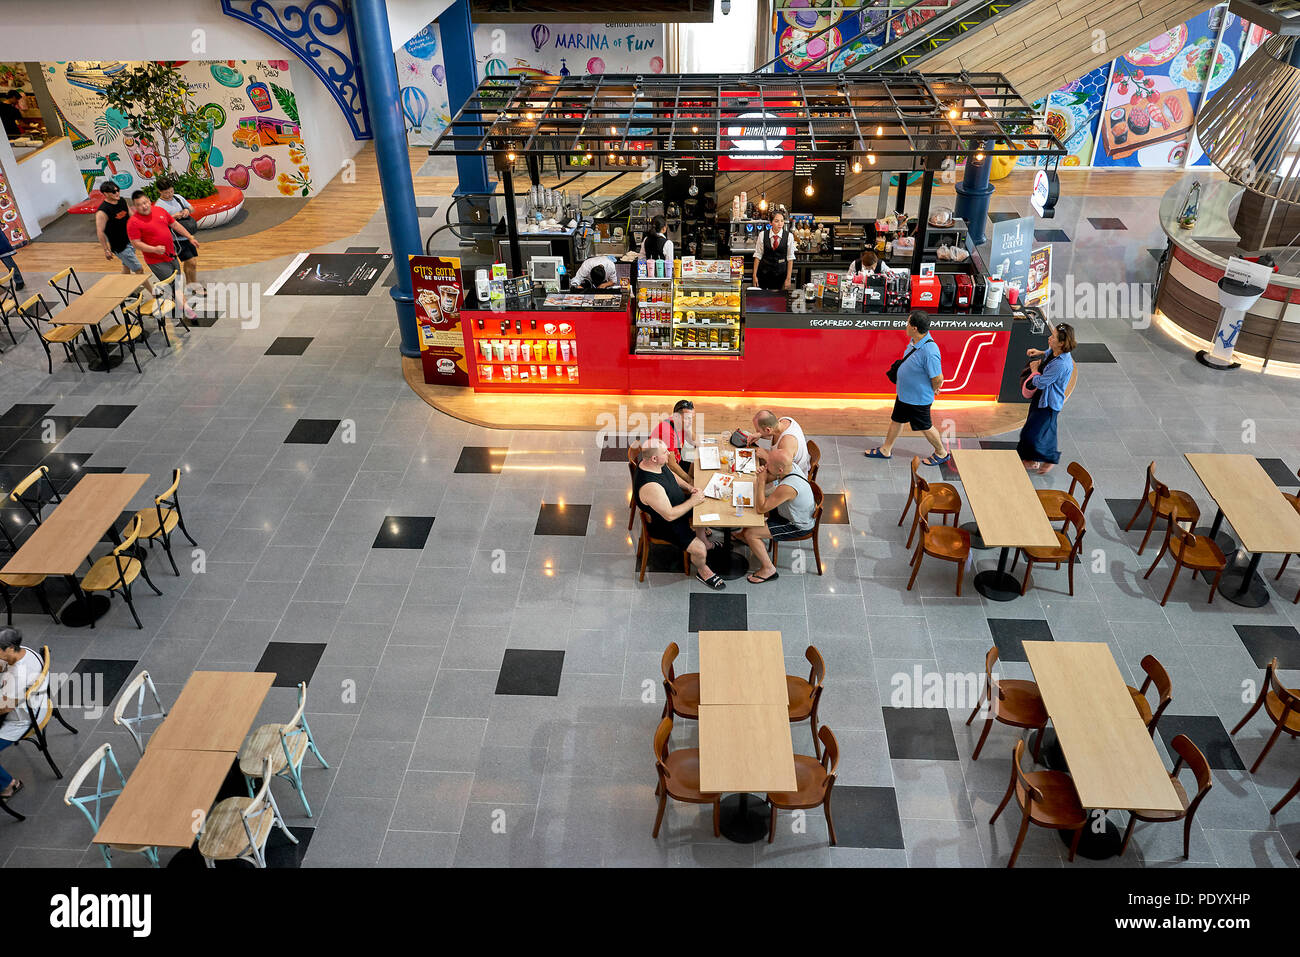 Overhead view of the restaurant dining area in a Thailand shopping mall. Diners from above. Southeast Asia. - Stock Image